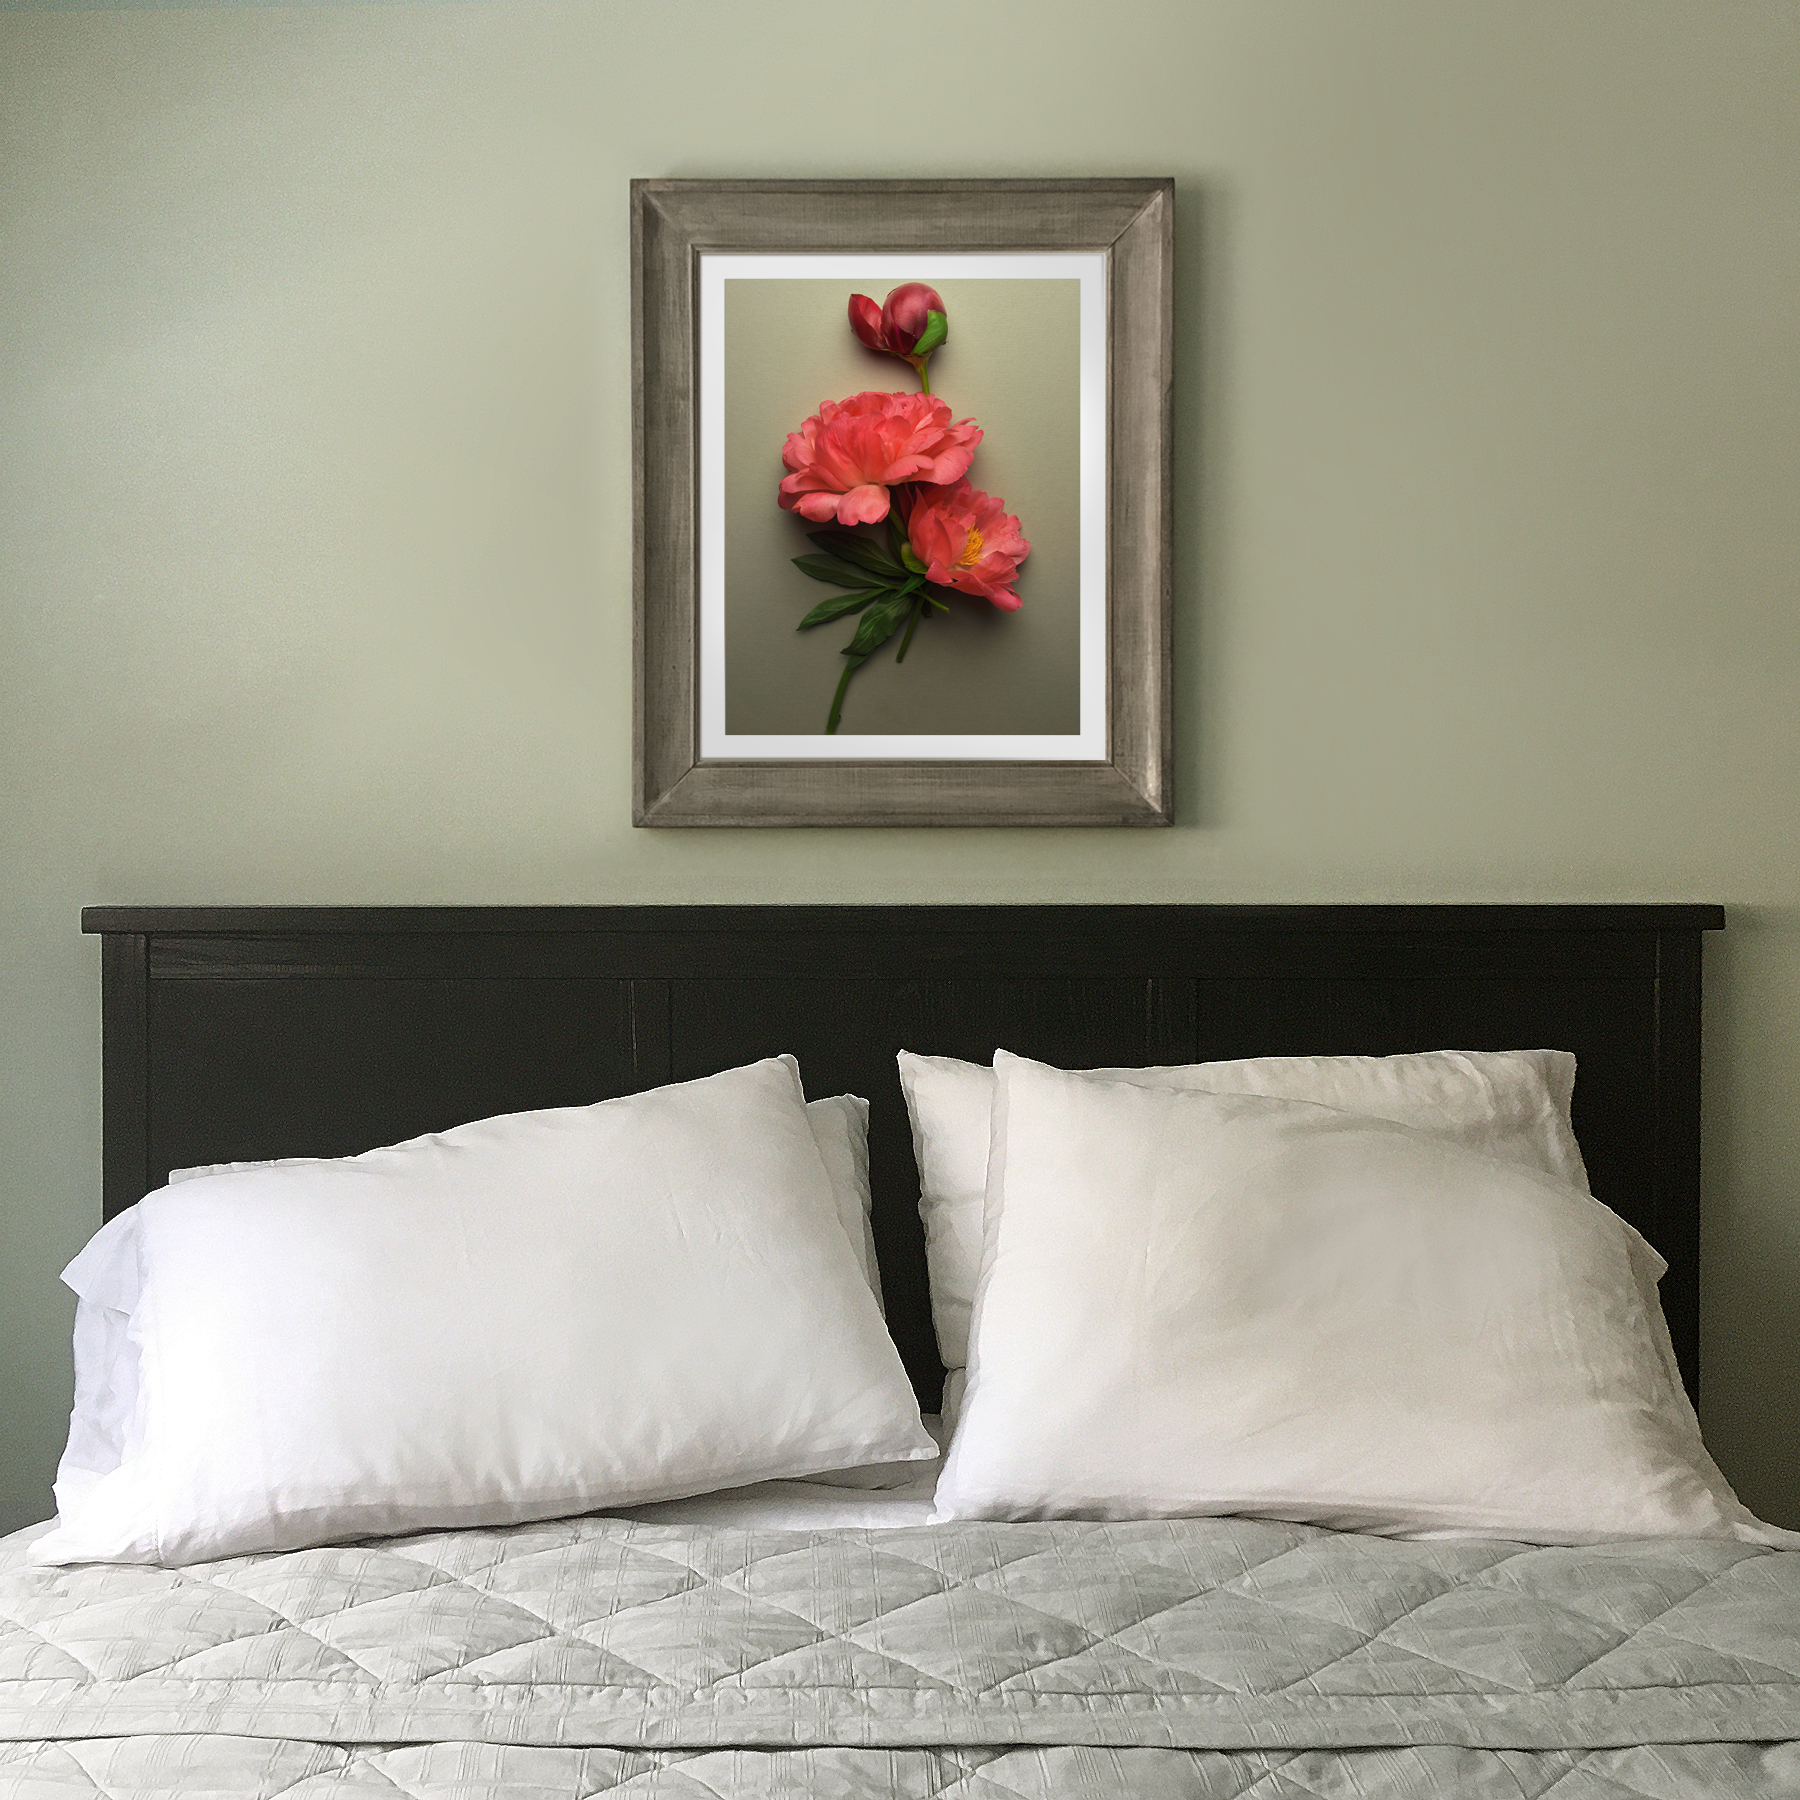 Peonies Over the Bed